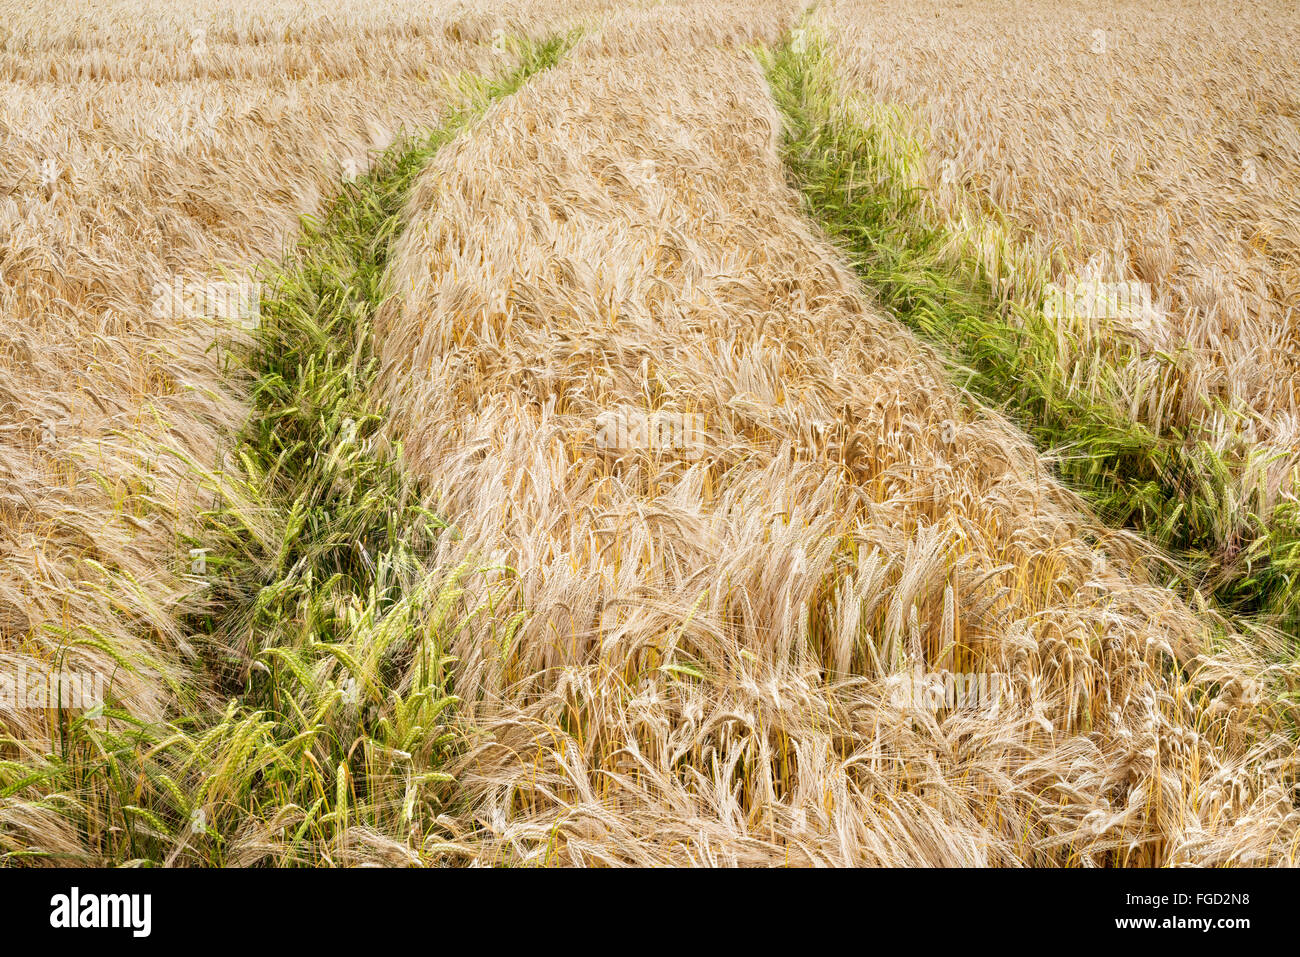 Tyre tracks in a Barley field in East Yorkshire. - Stock Image